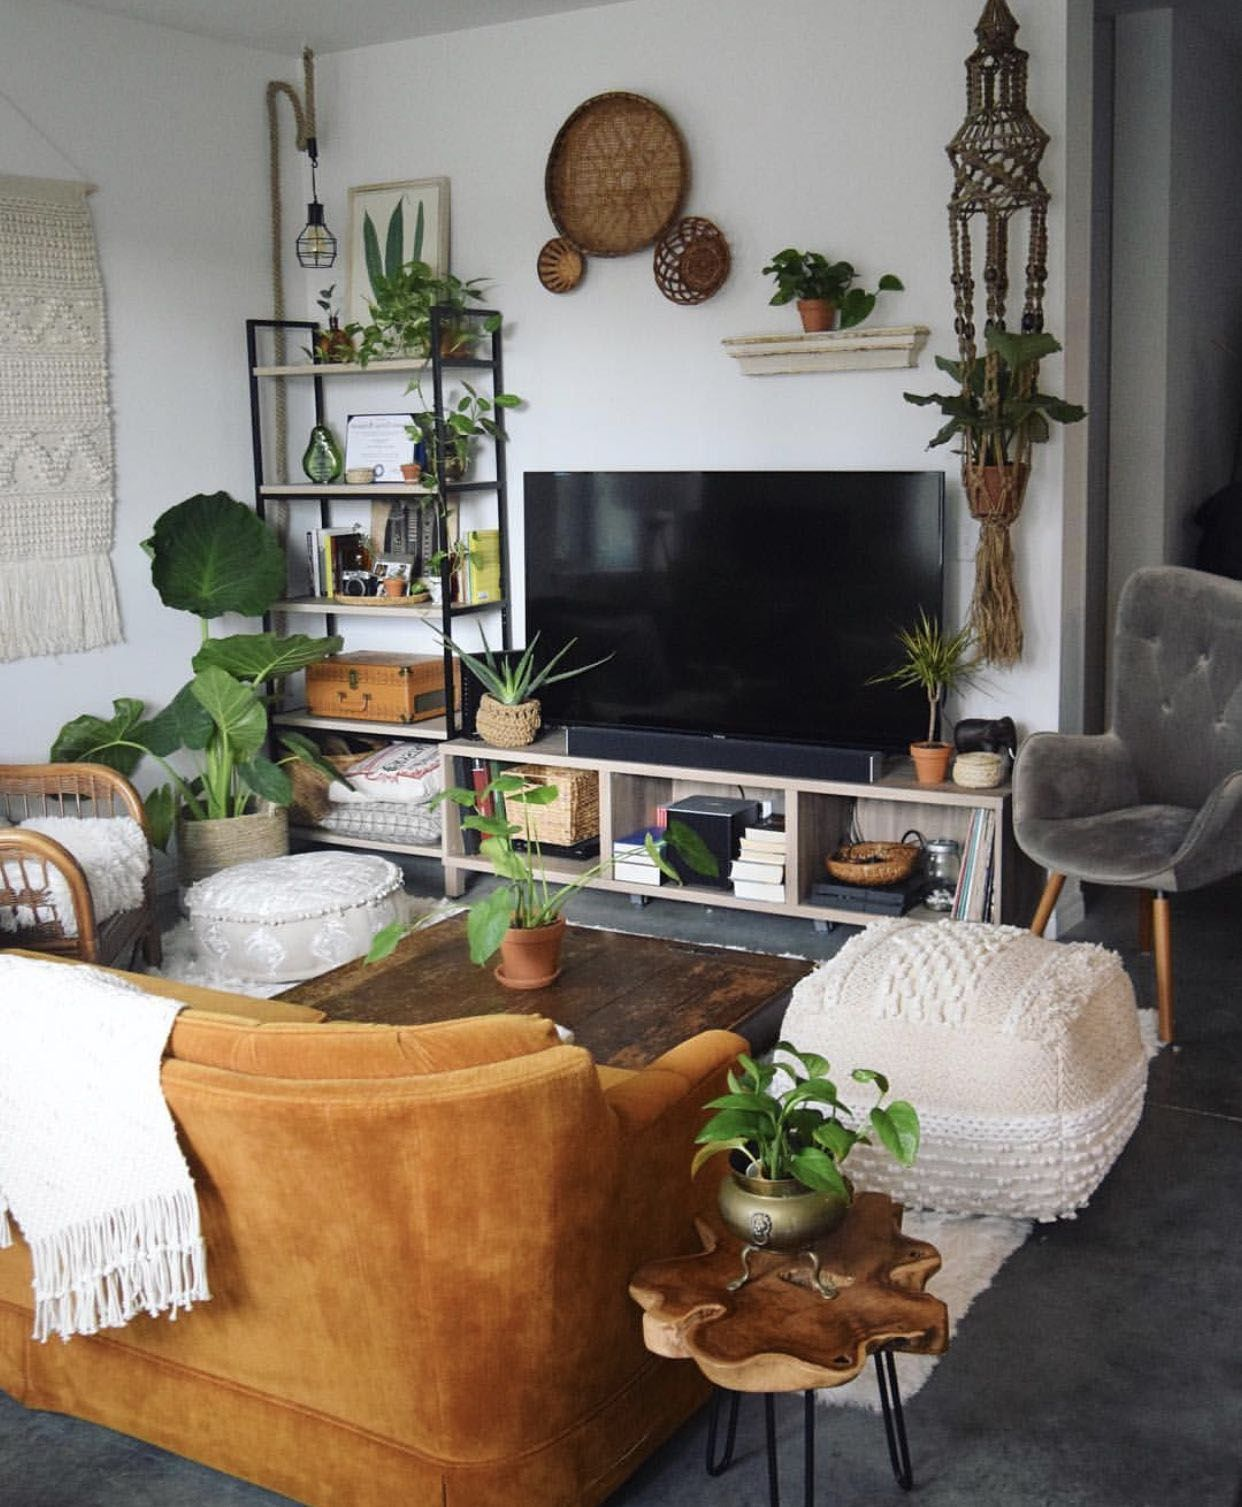 20 Exceptionally Eclectic Living Space Styles In 2020 Eclectic Living Room Living Room Decor Modern Apartment Living Room